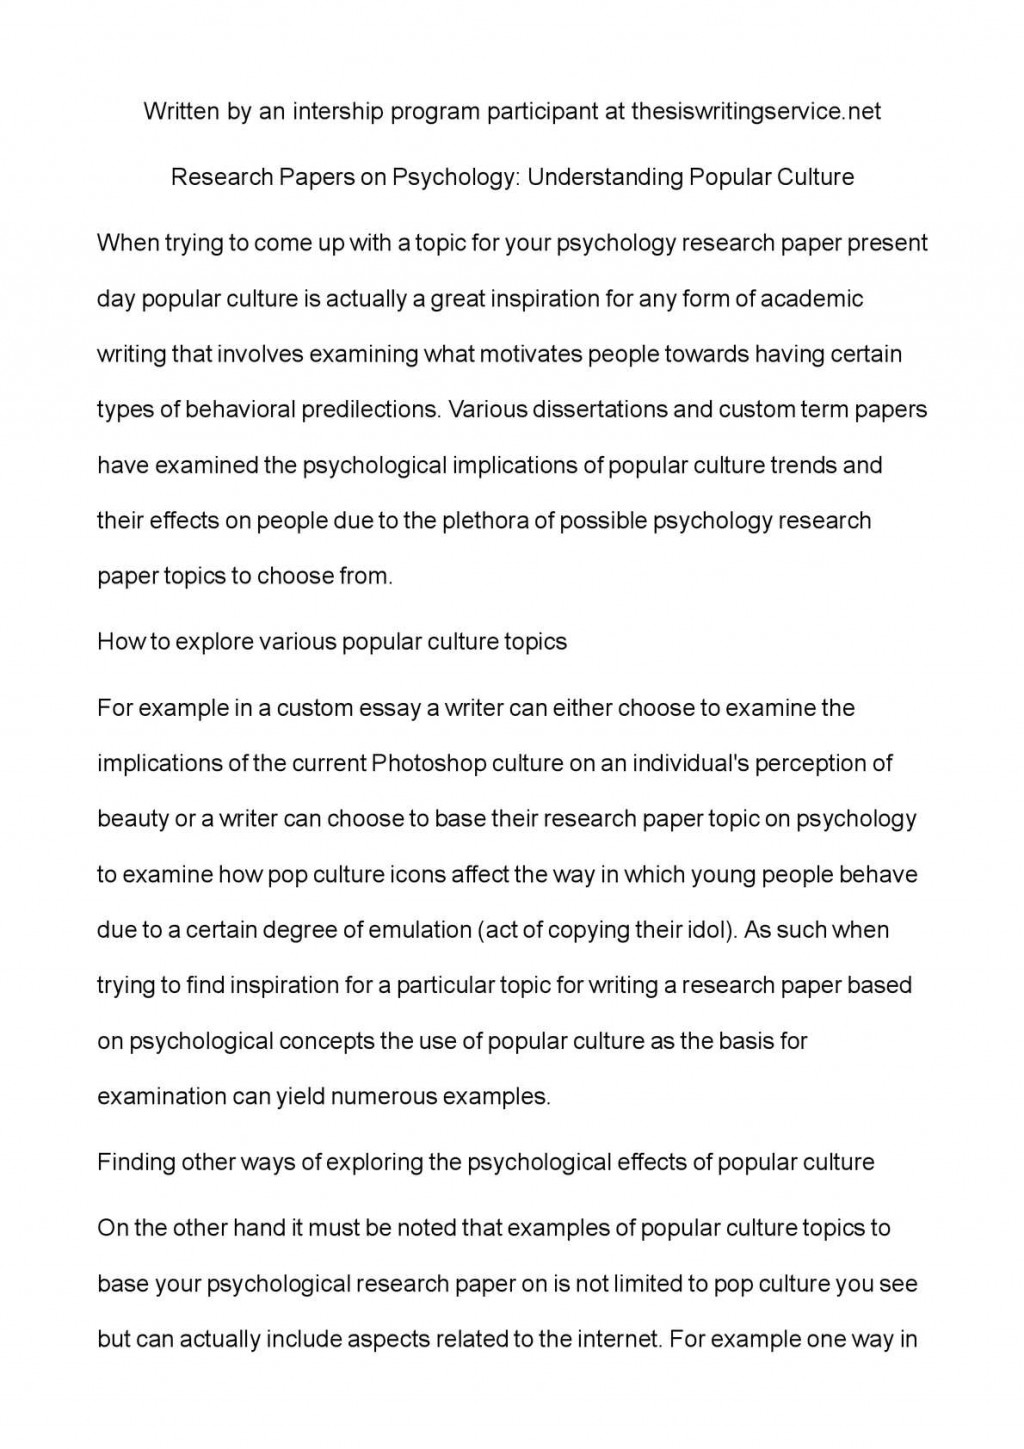 003 Research Paper Psychology Papers Surprising For Topic Examples Online Large